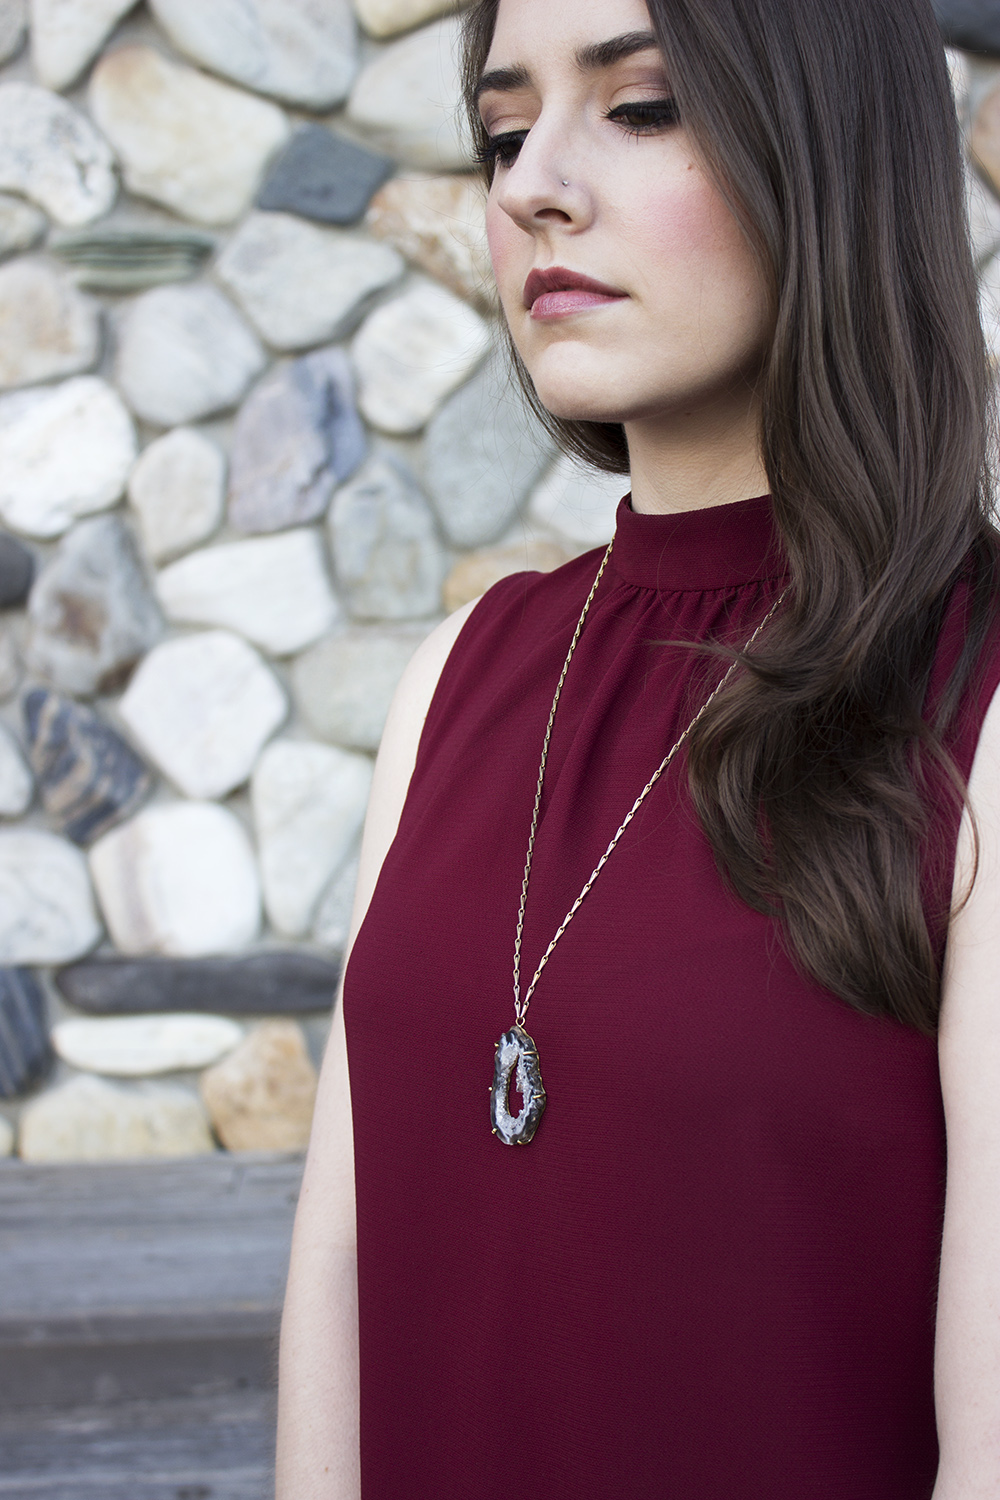 UncommonGoods geode necklace outfit Oco Geode Pendant 2